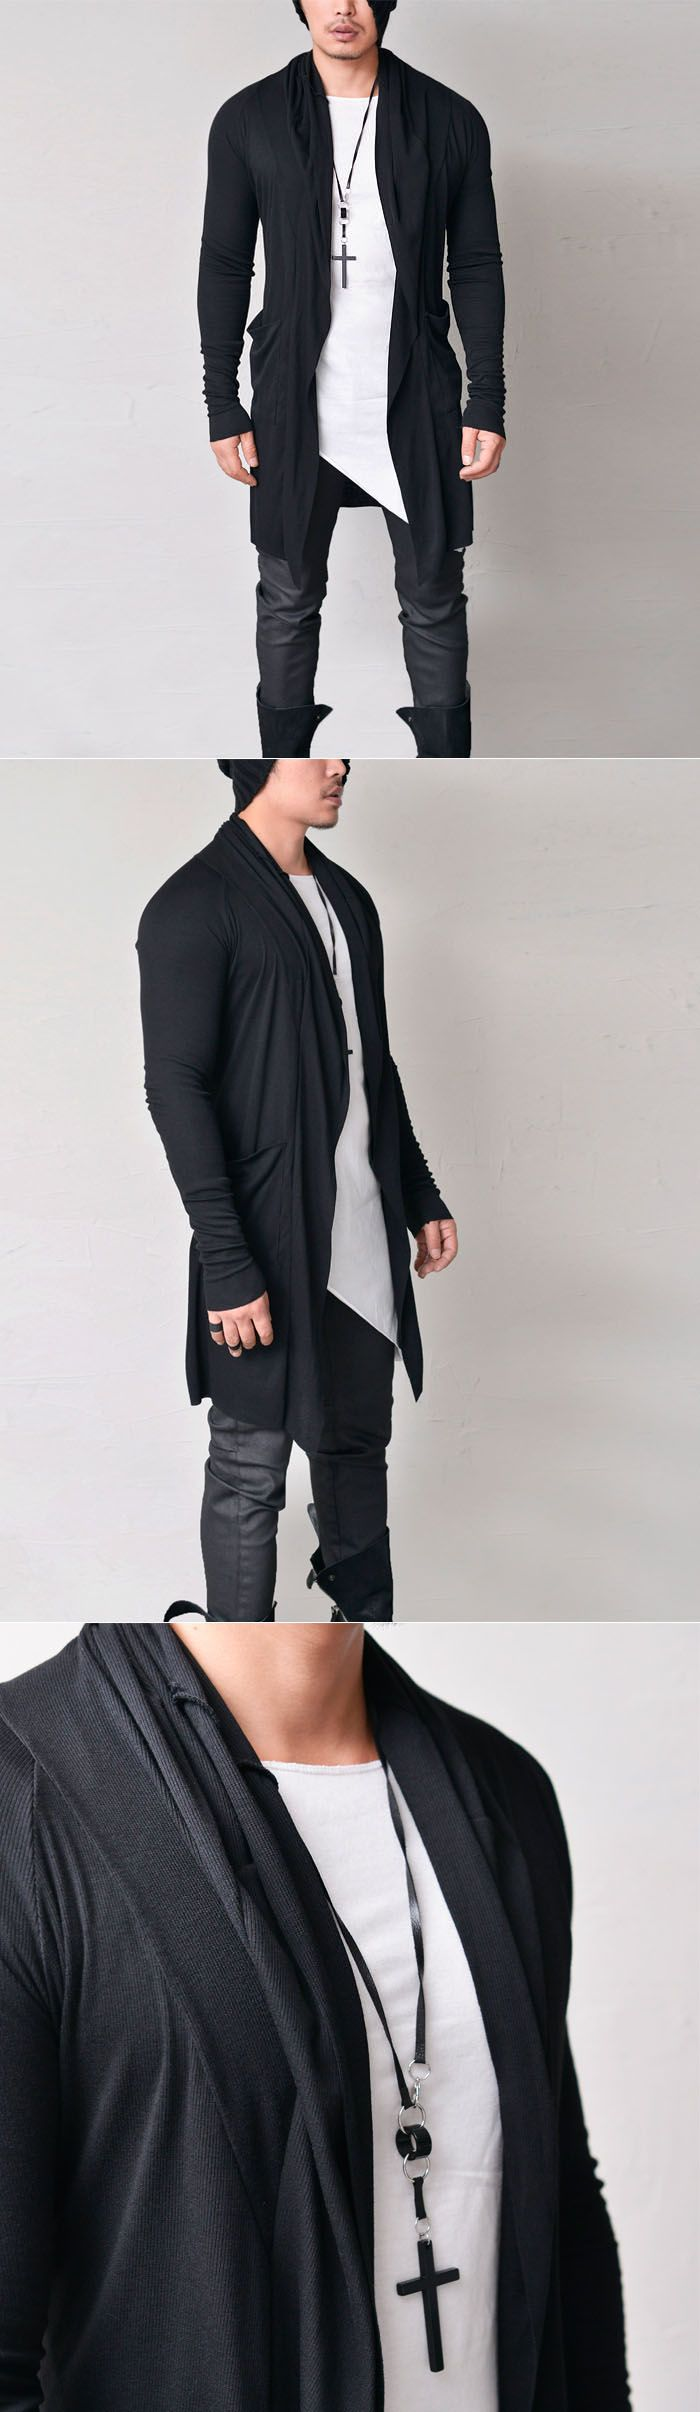 Extra Slim Long Shawl Jacket-Cardigan 190 by. Guylook.com  Great quality light-weight ribbed cottonblends Excellent flexibility & comfy snug fit